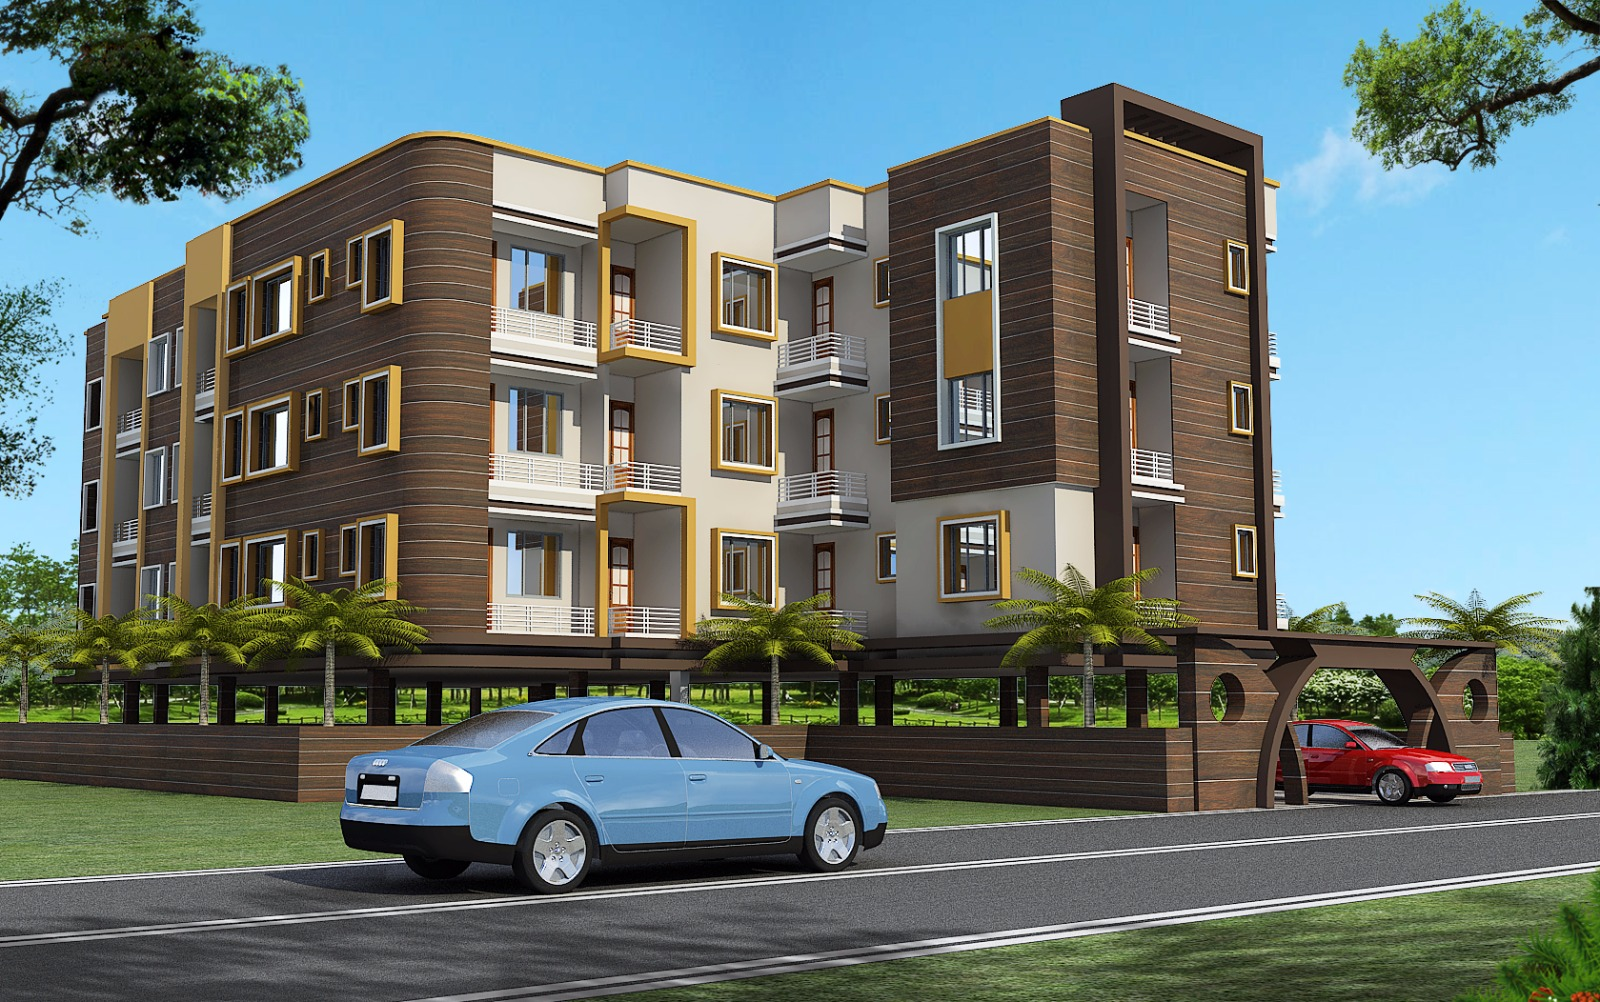 Residential Flat 2 Bhk, Apartment In Badra Gaighat Patna-07